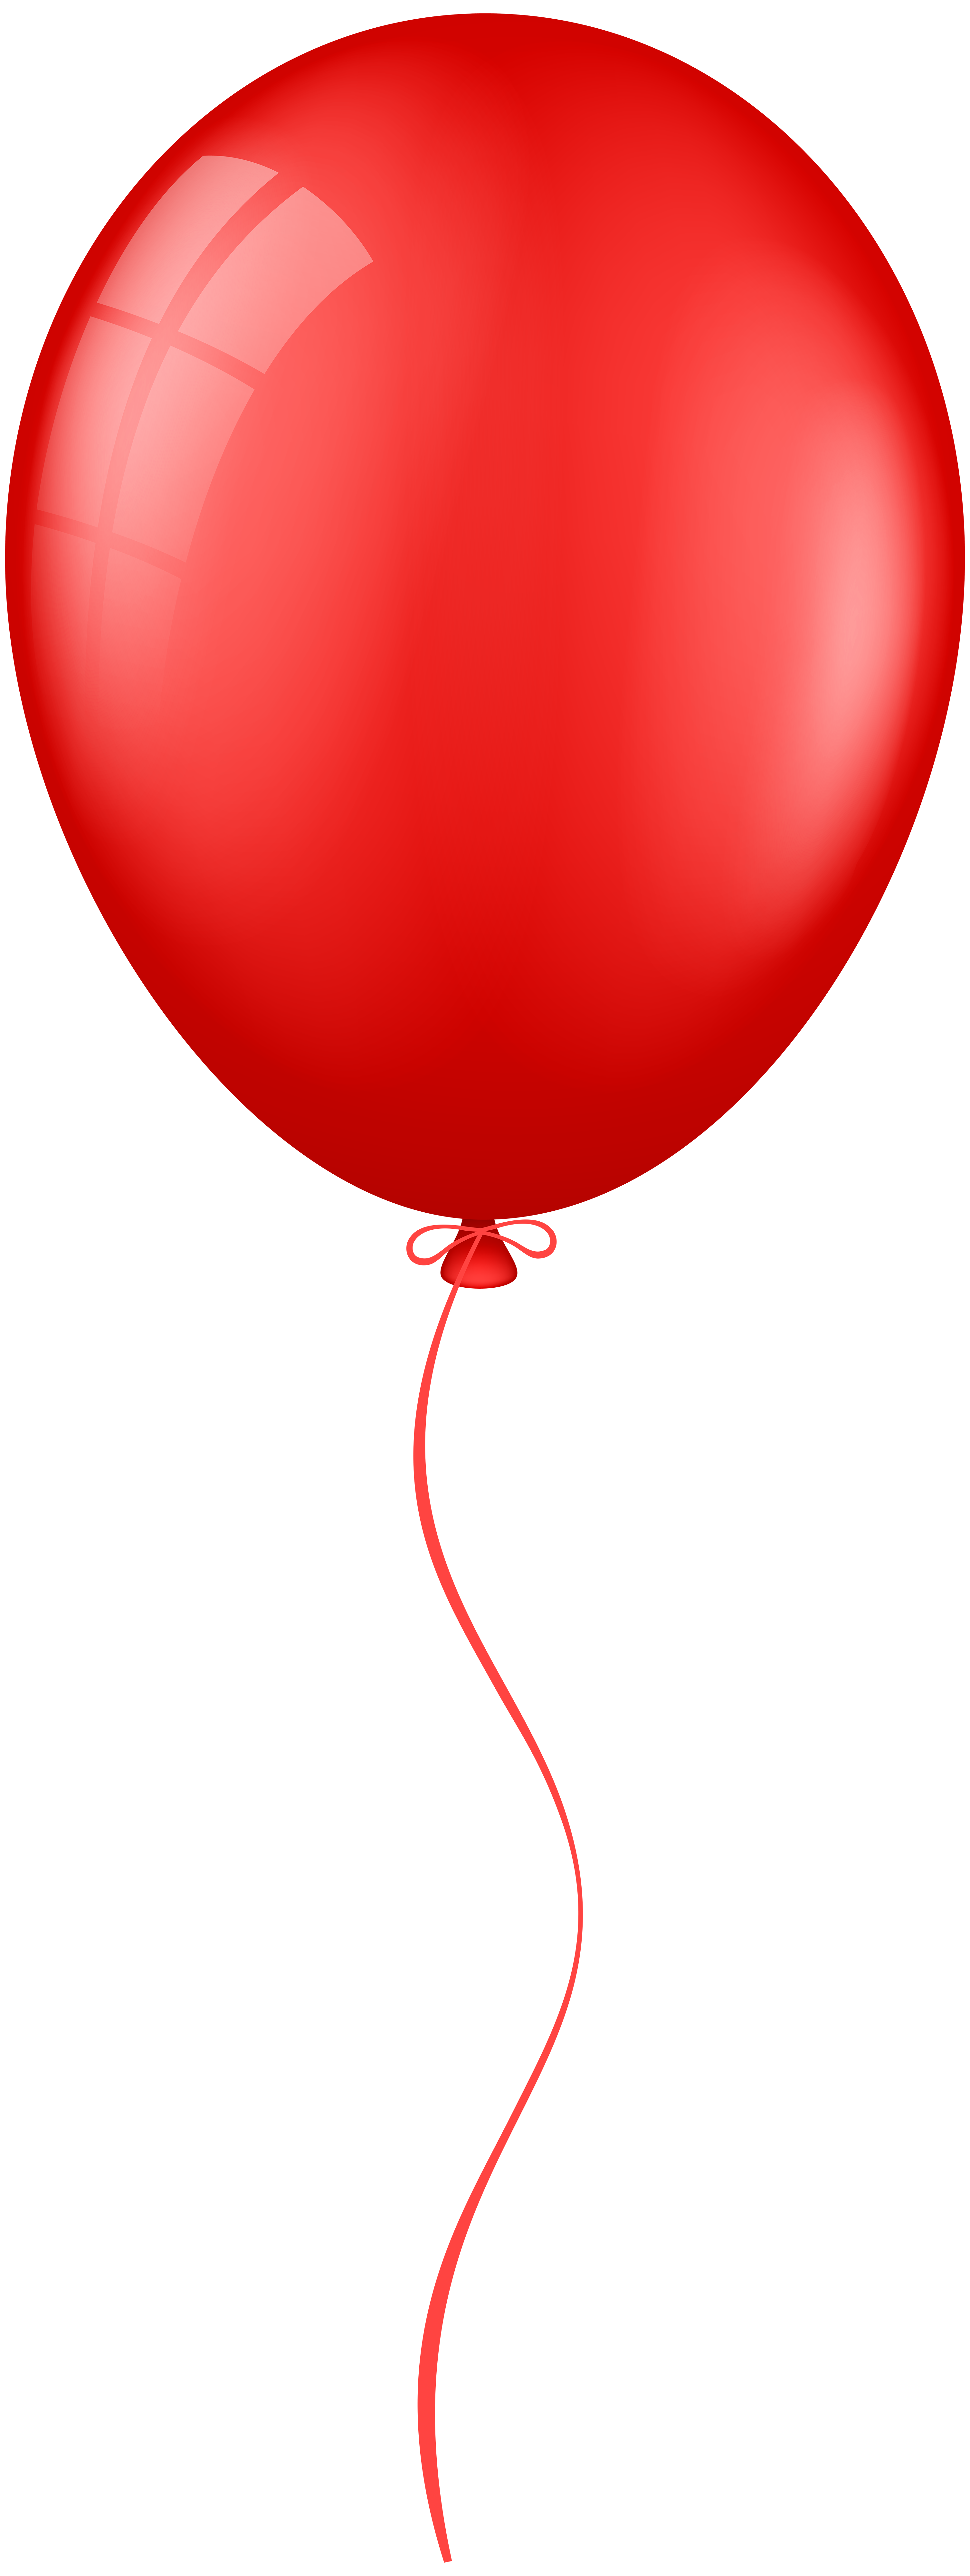 Free Red Balloon Transparent Background, Download Free Clip.